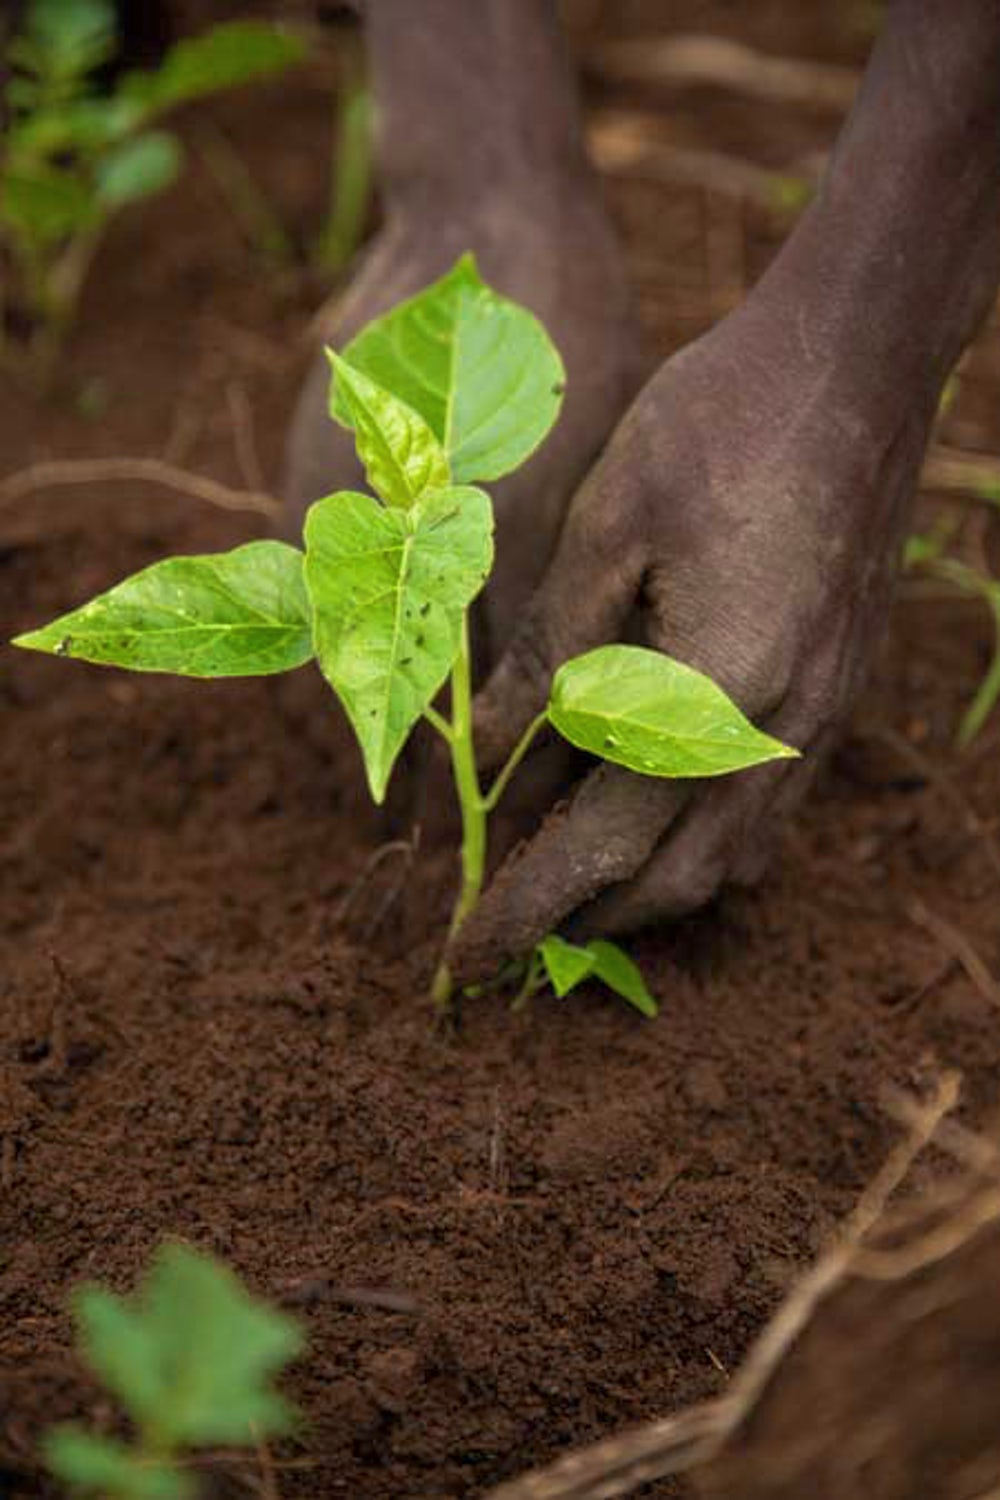 Hands placing plant in soil